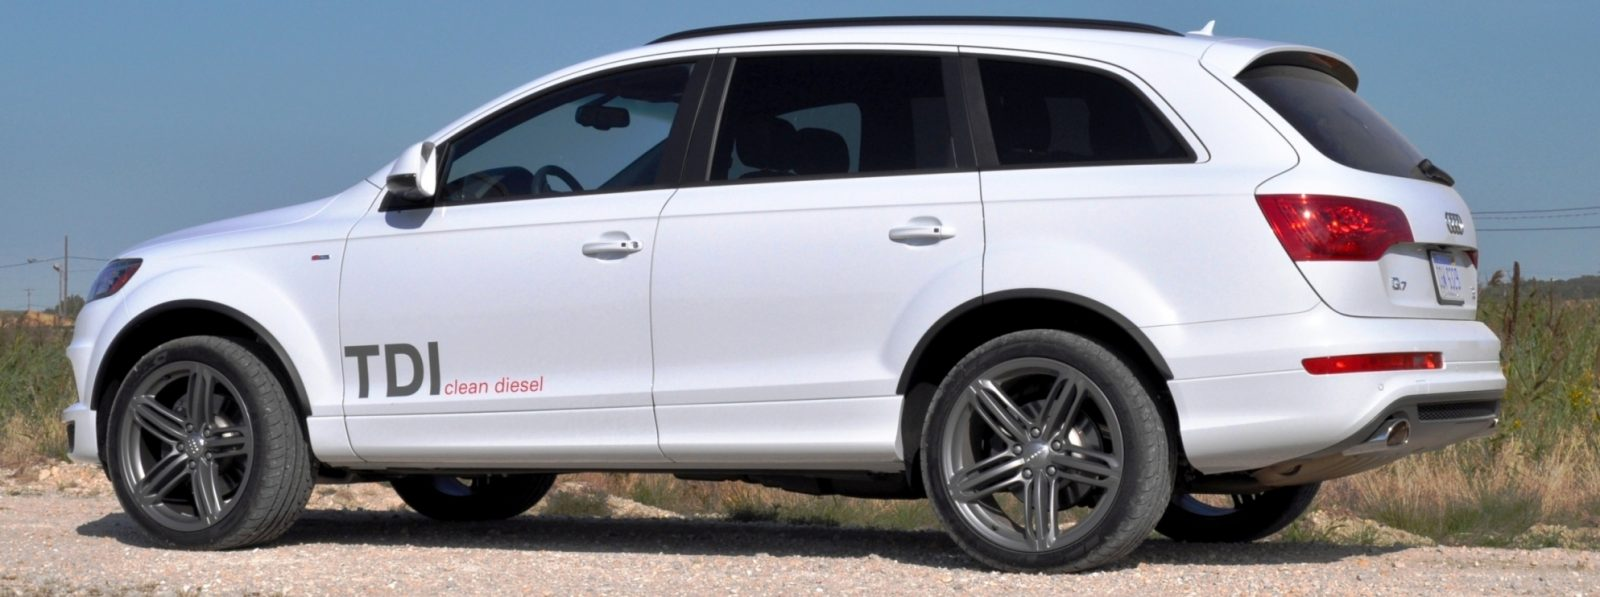 2014 Audi Q7 TDI S-line Plus - Carrara White 12